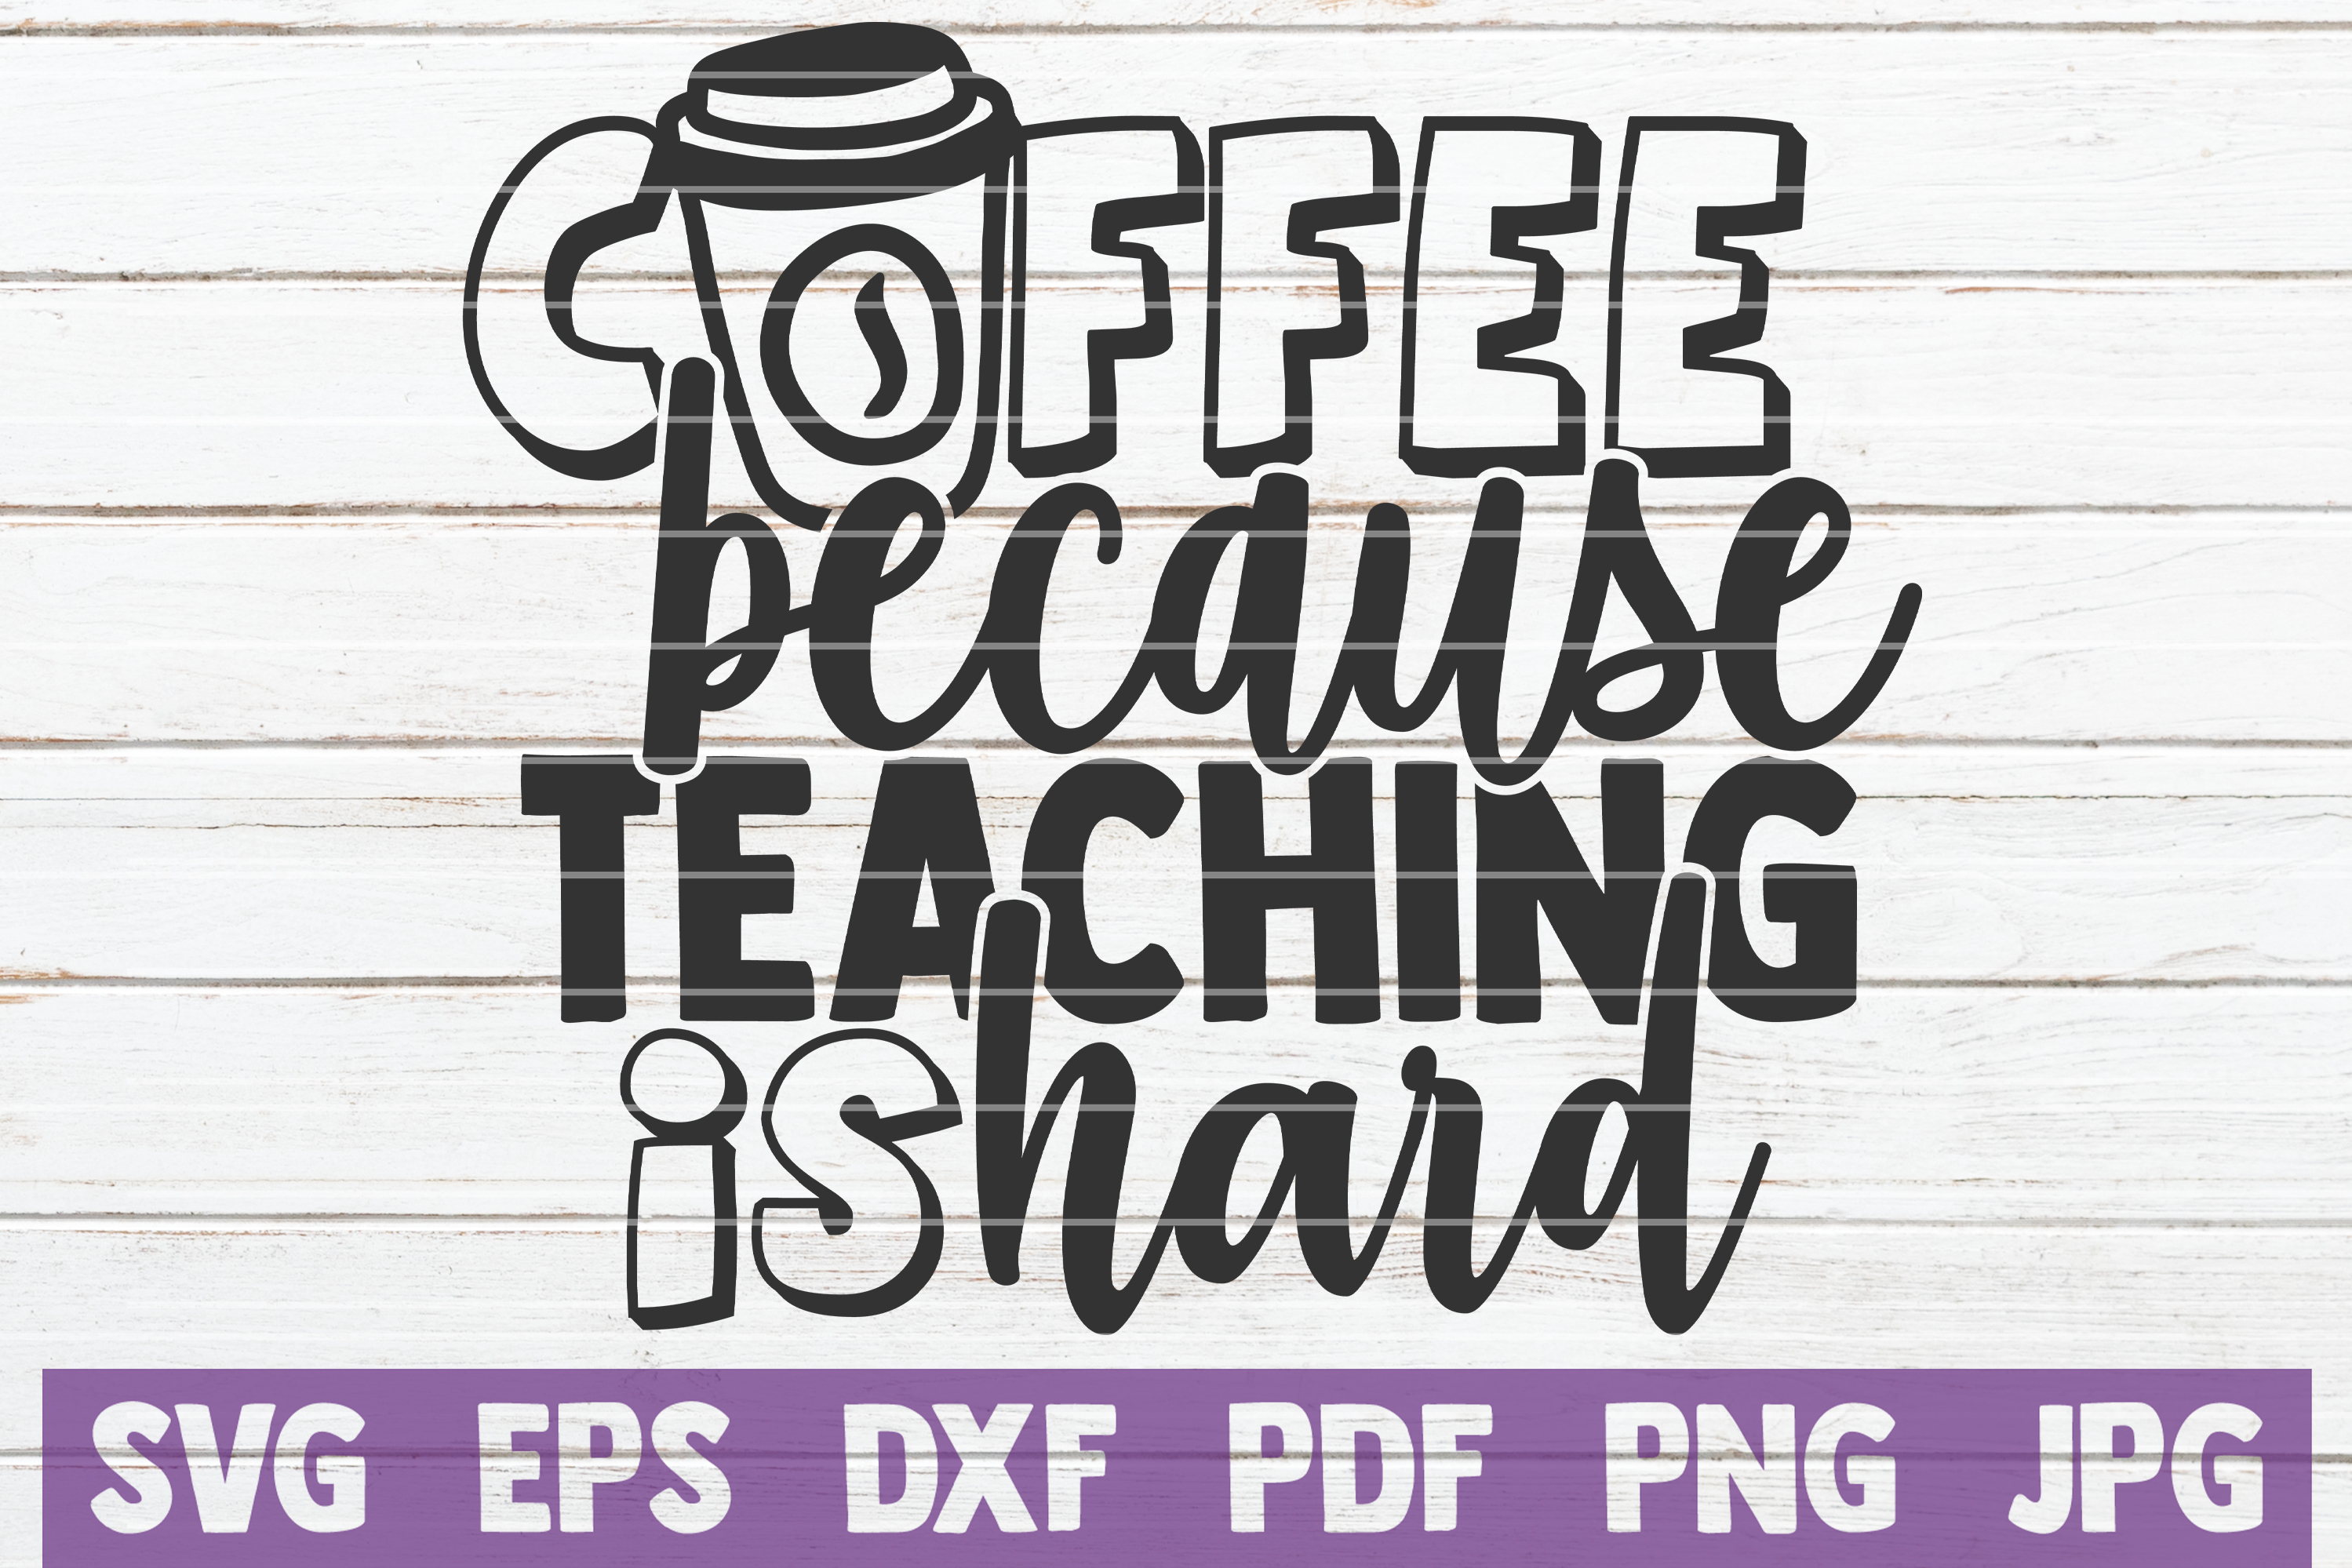 Download Free Coffee Because Teaching Is Hard Graphic By Mintymarshmallows for Cricut Explore, Silhouette and other cutting machines.